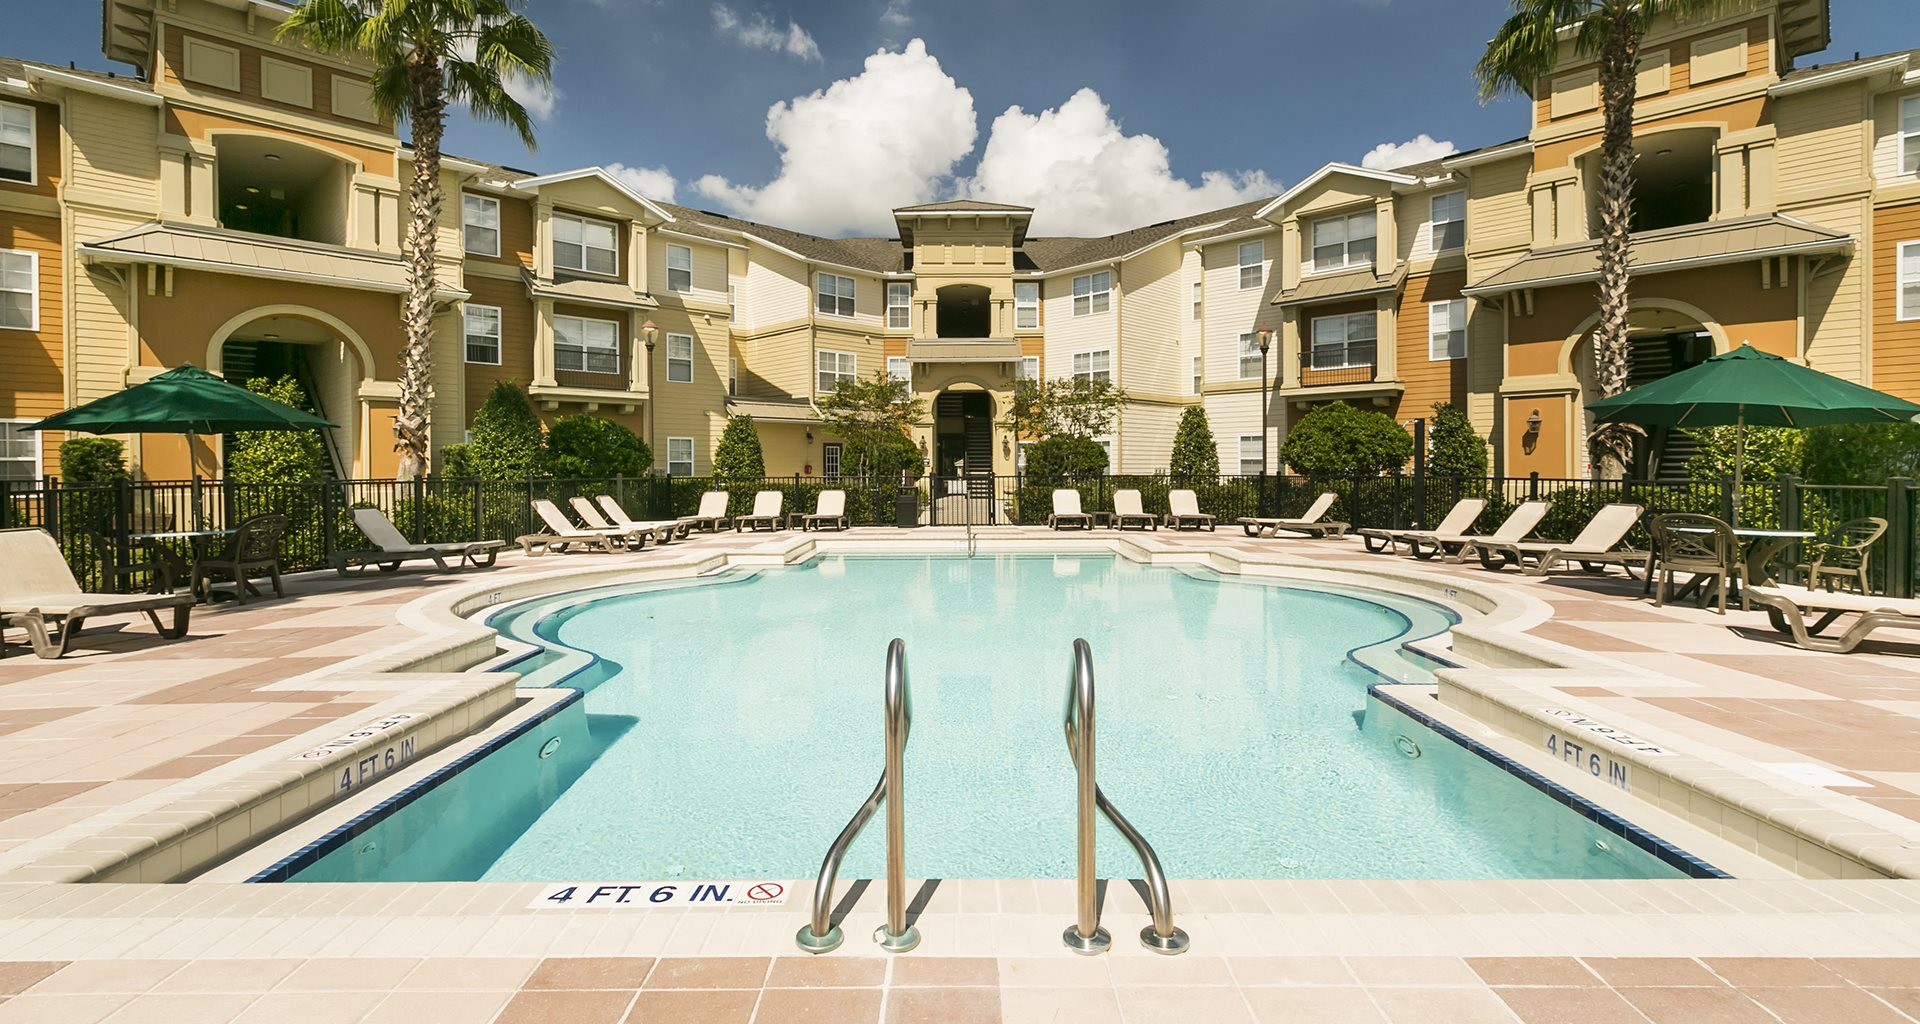 Astonishing Apartments In Tampa Fl Fairview Cove Apartments Concord Download Free Architecture Designs Scobabritishbridgeorg